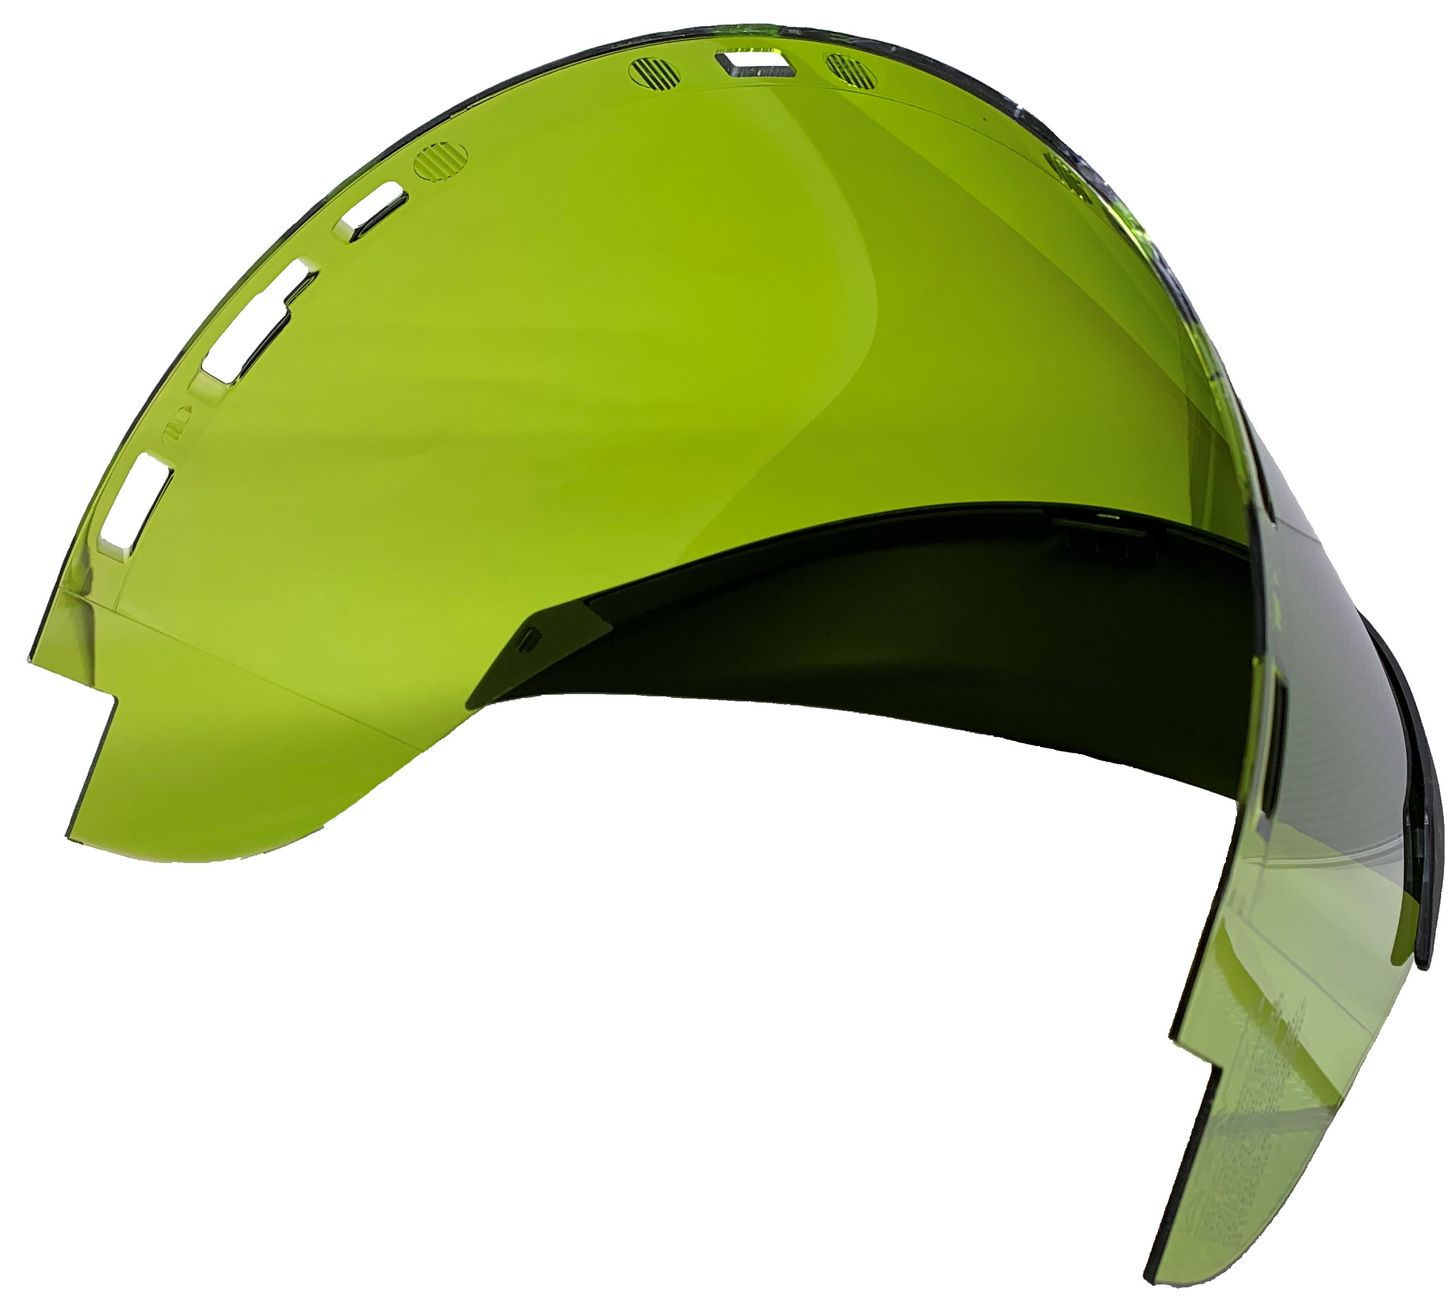 chicago-protective-apparel-replacement-visors-for-face-shields-wv-arc-12-green-back.jpg